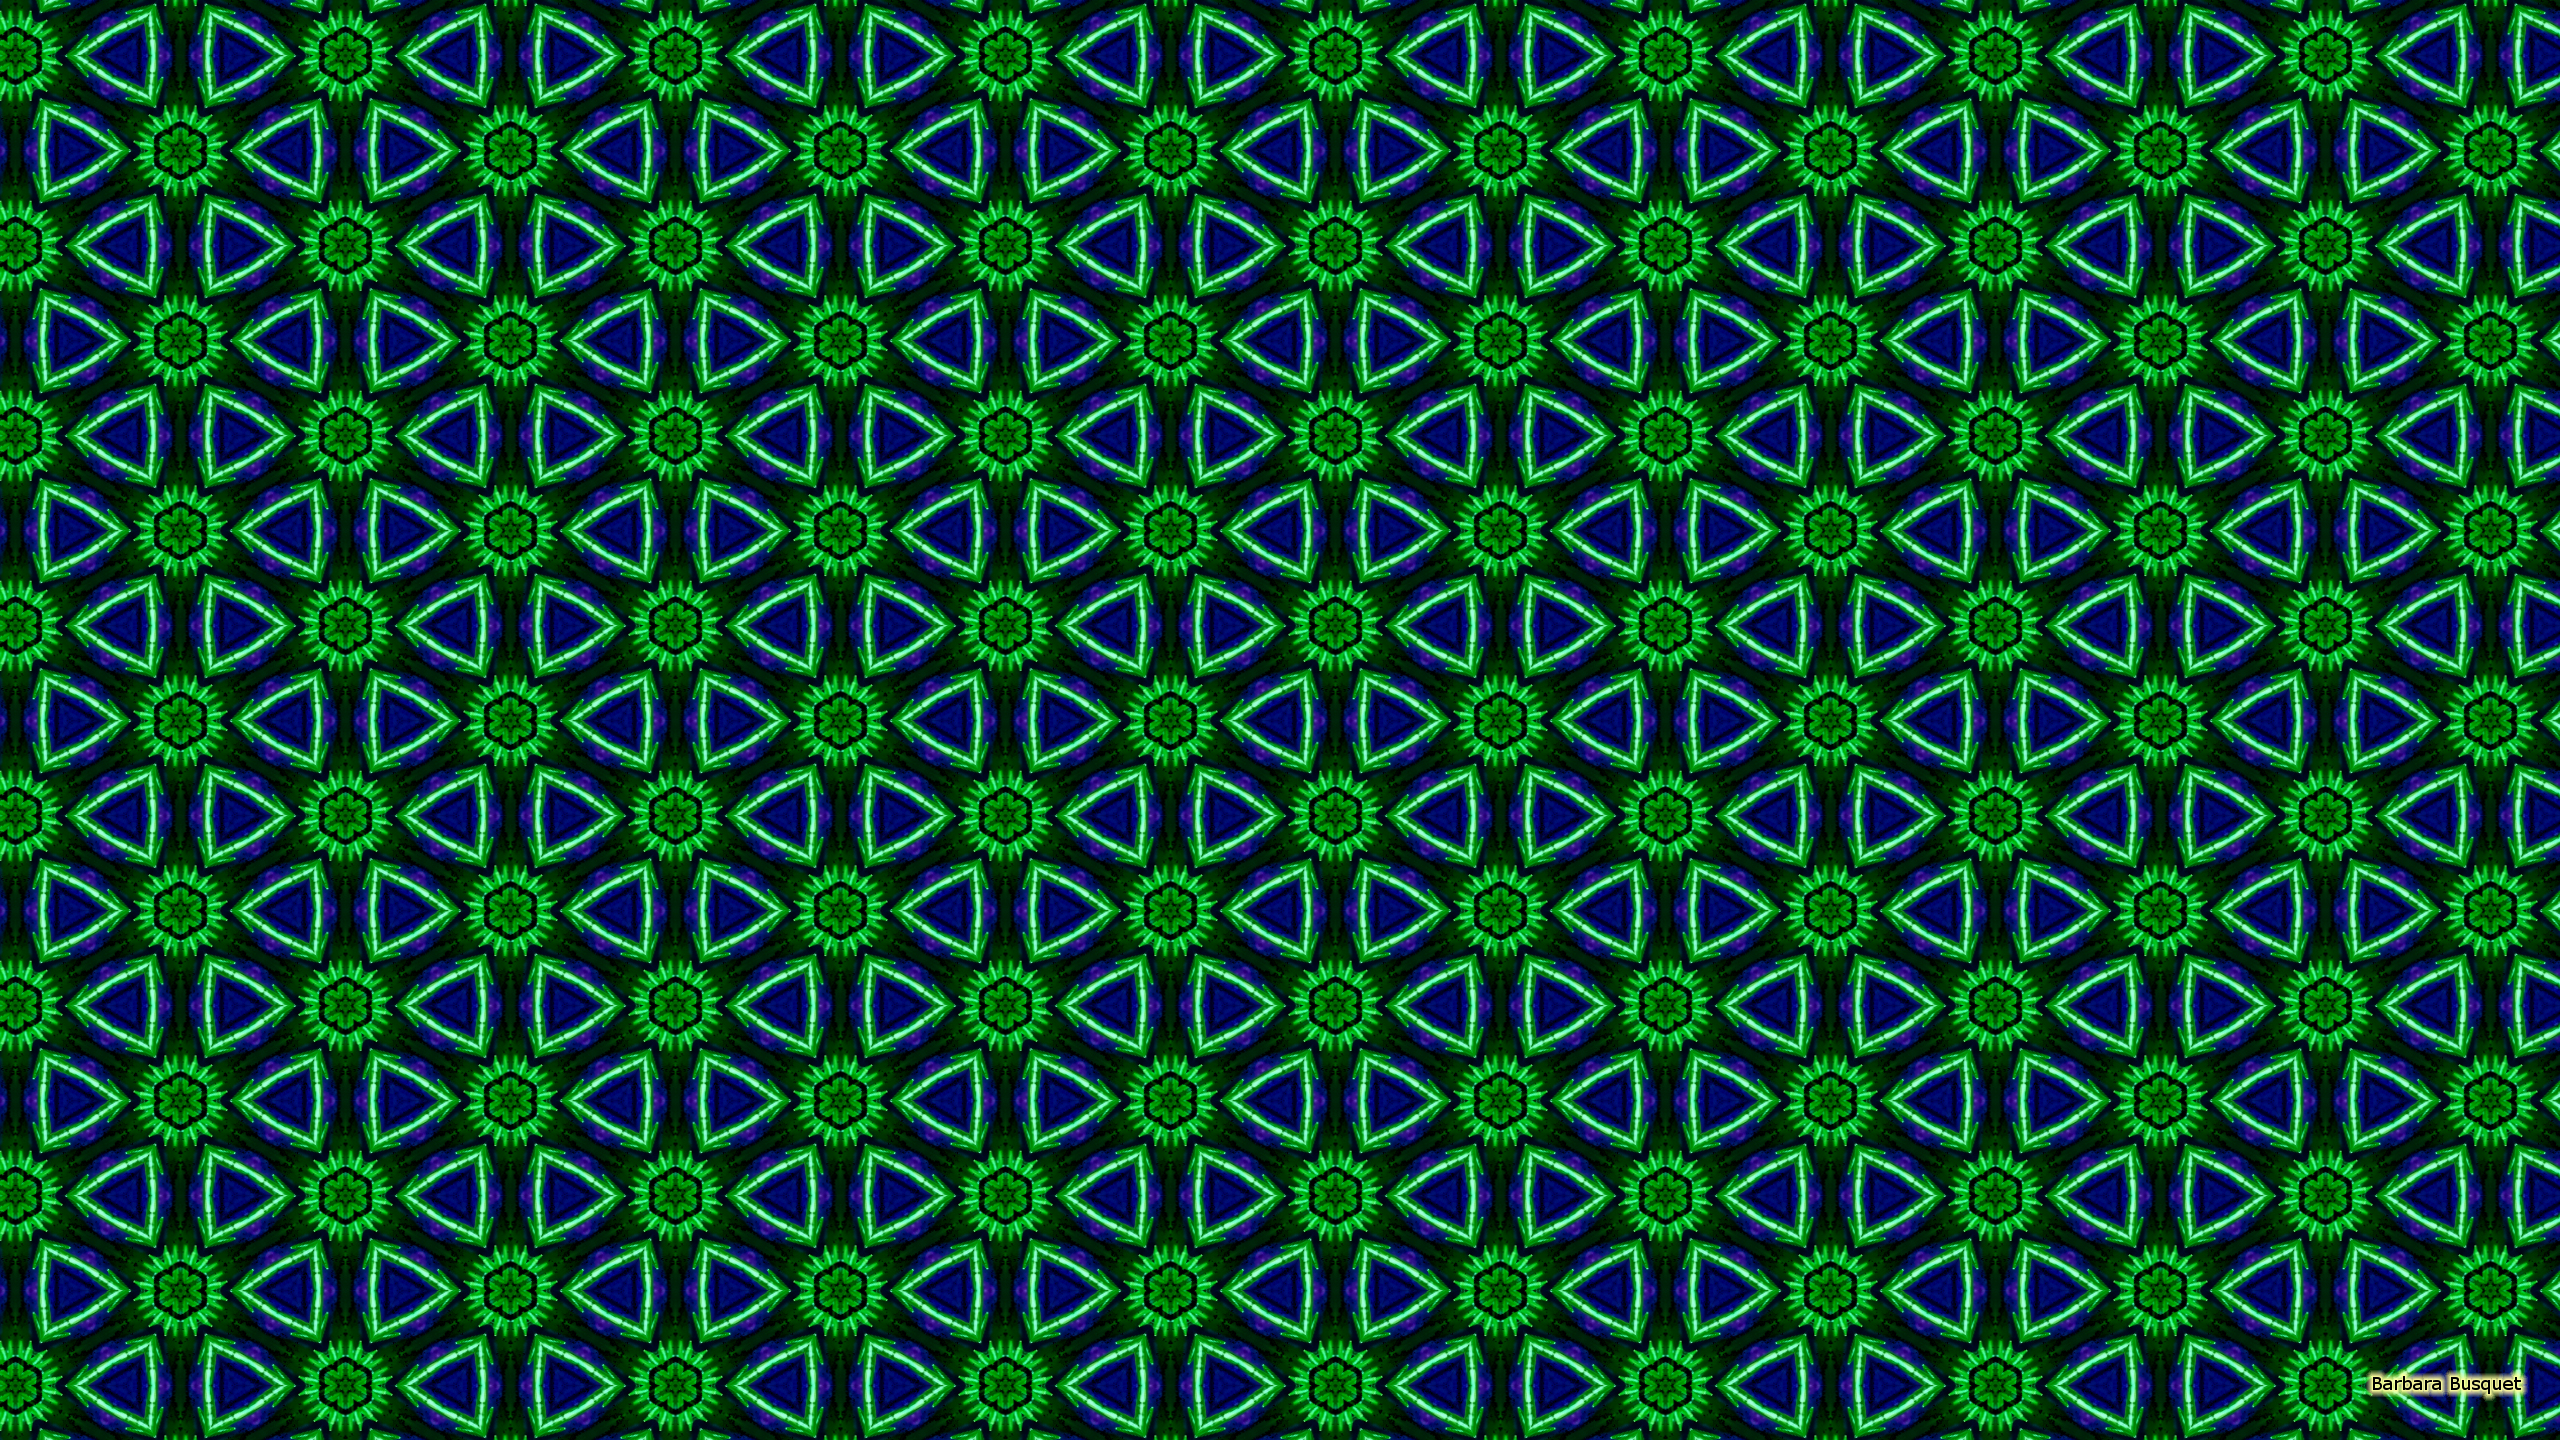 Blue With Green Patterns Barbaras Hd Wallpapers